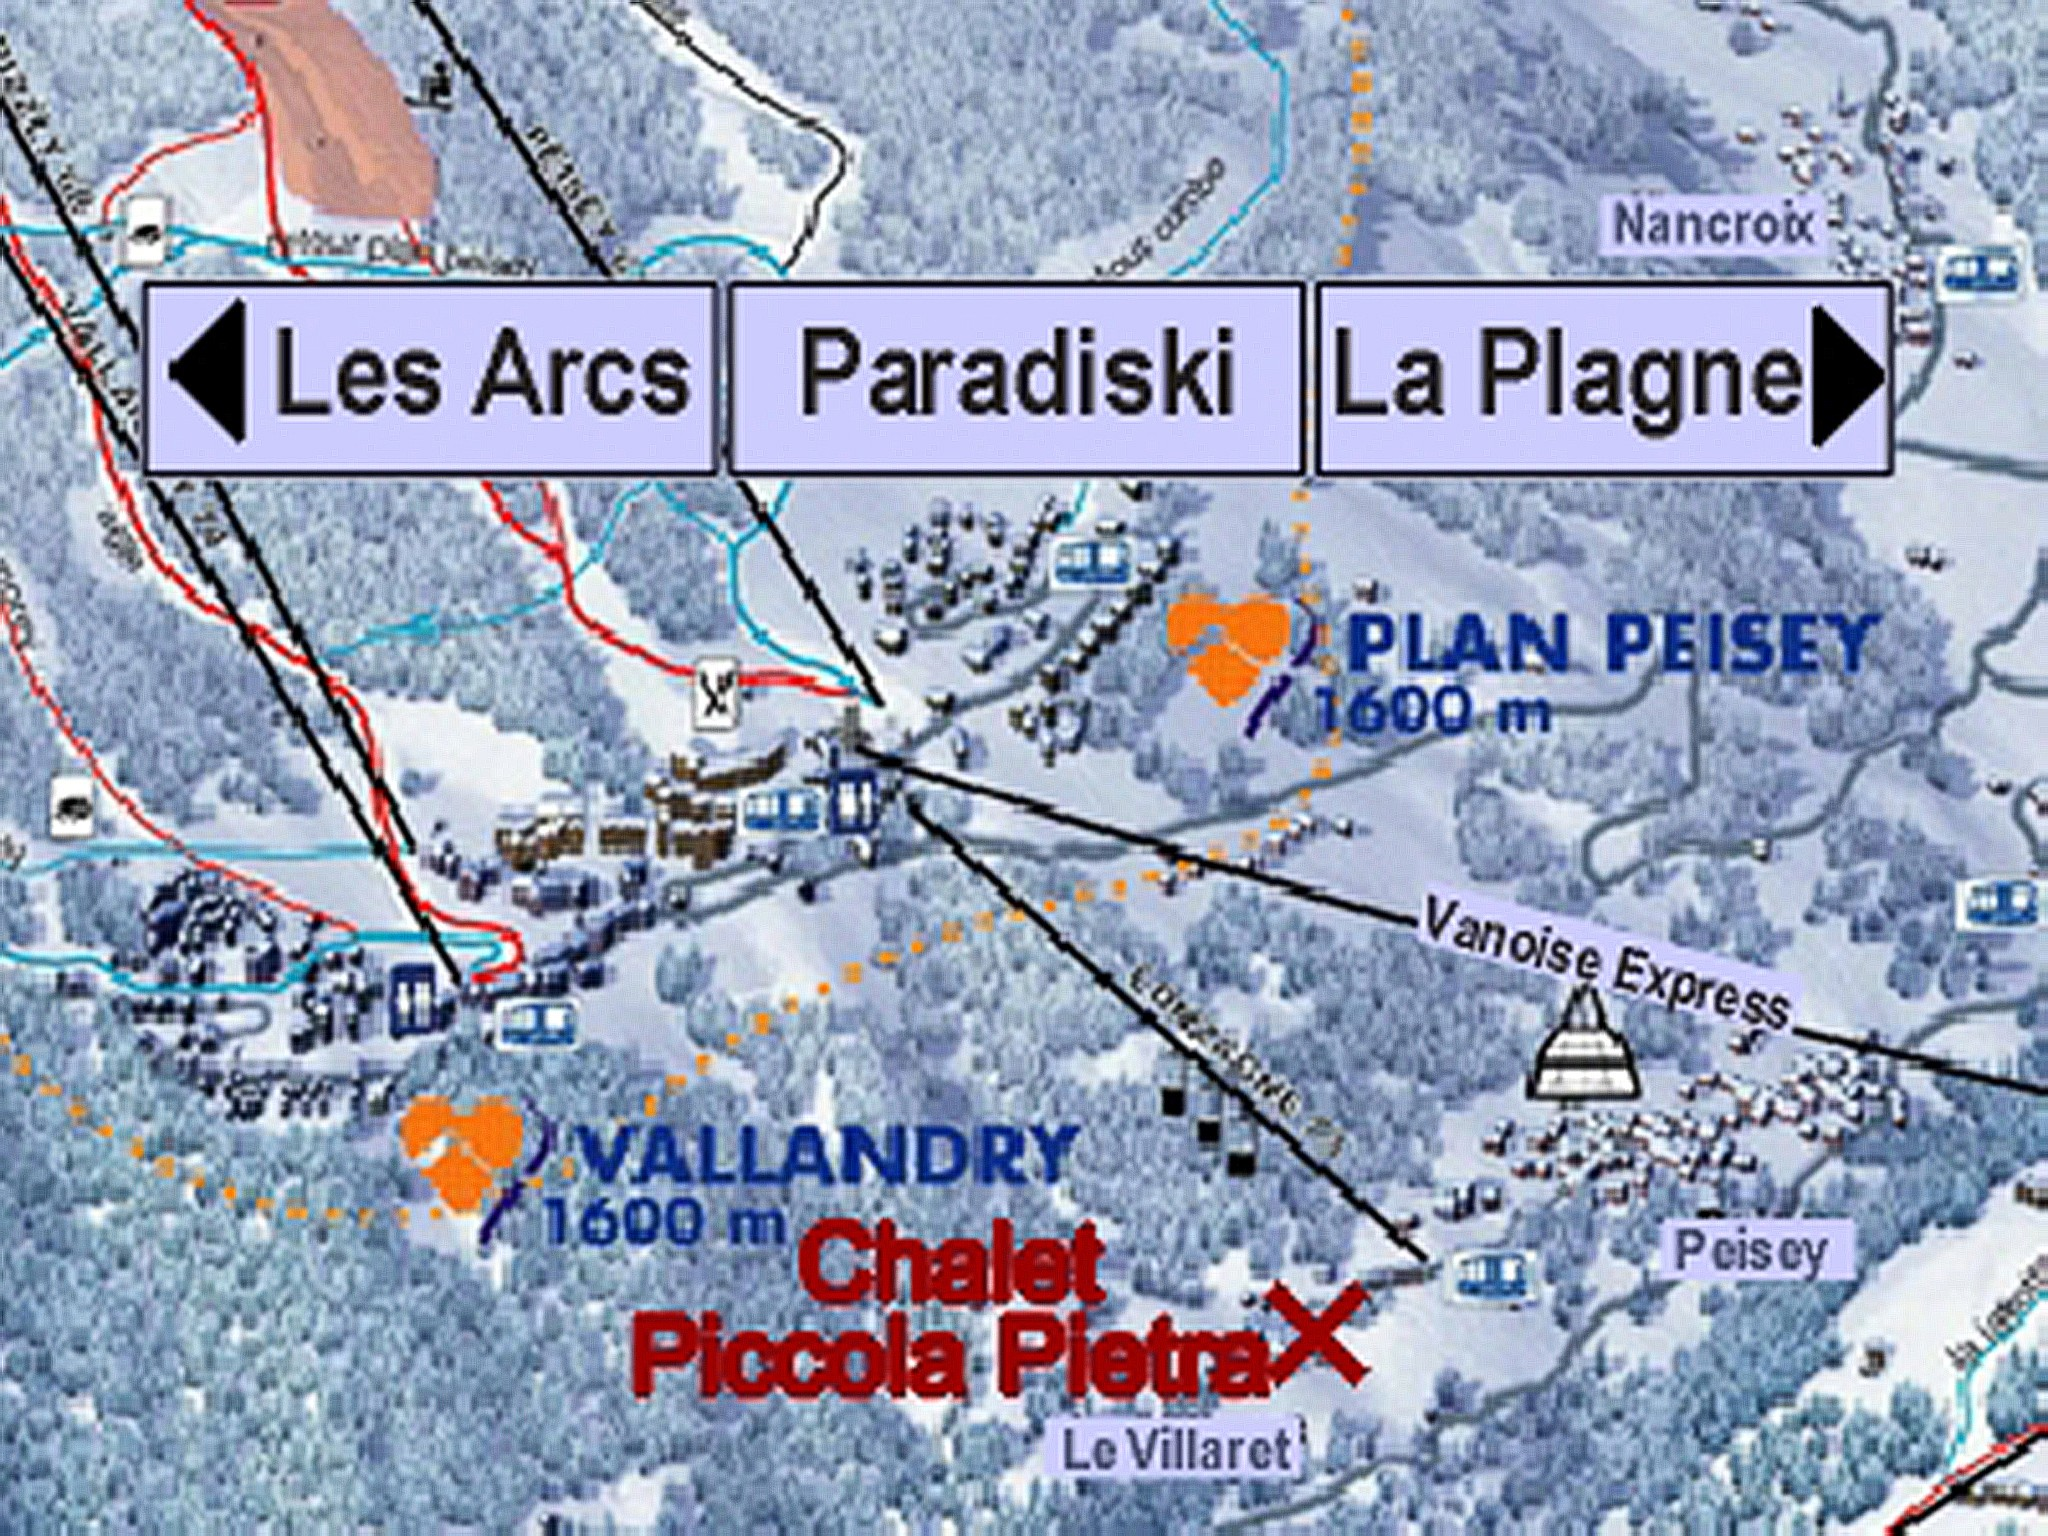 Chalet Piccola Pietra - location map